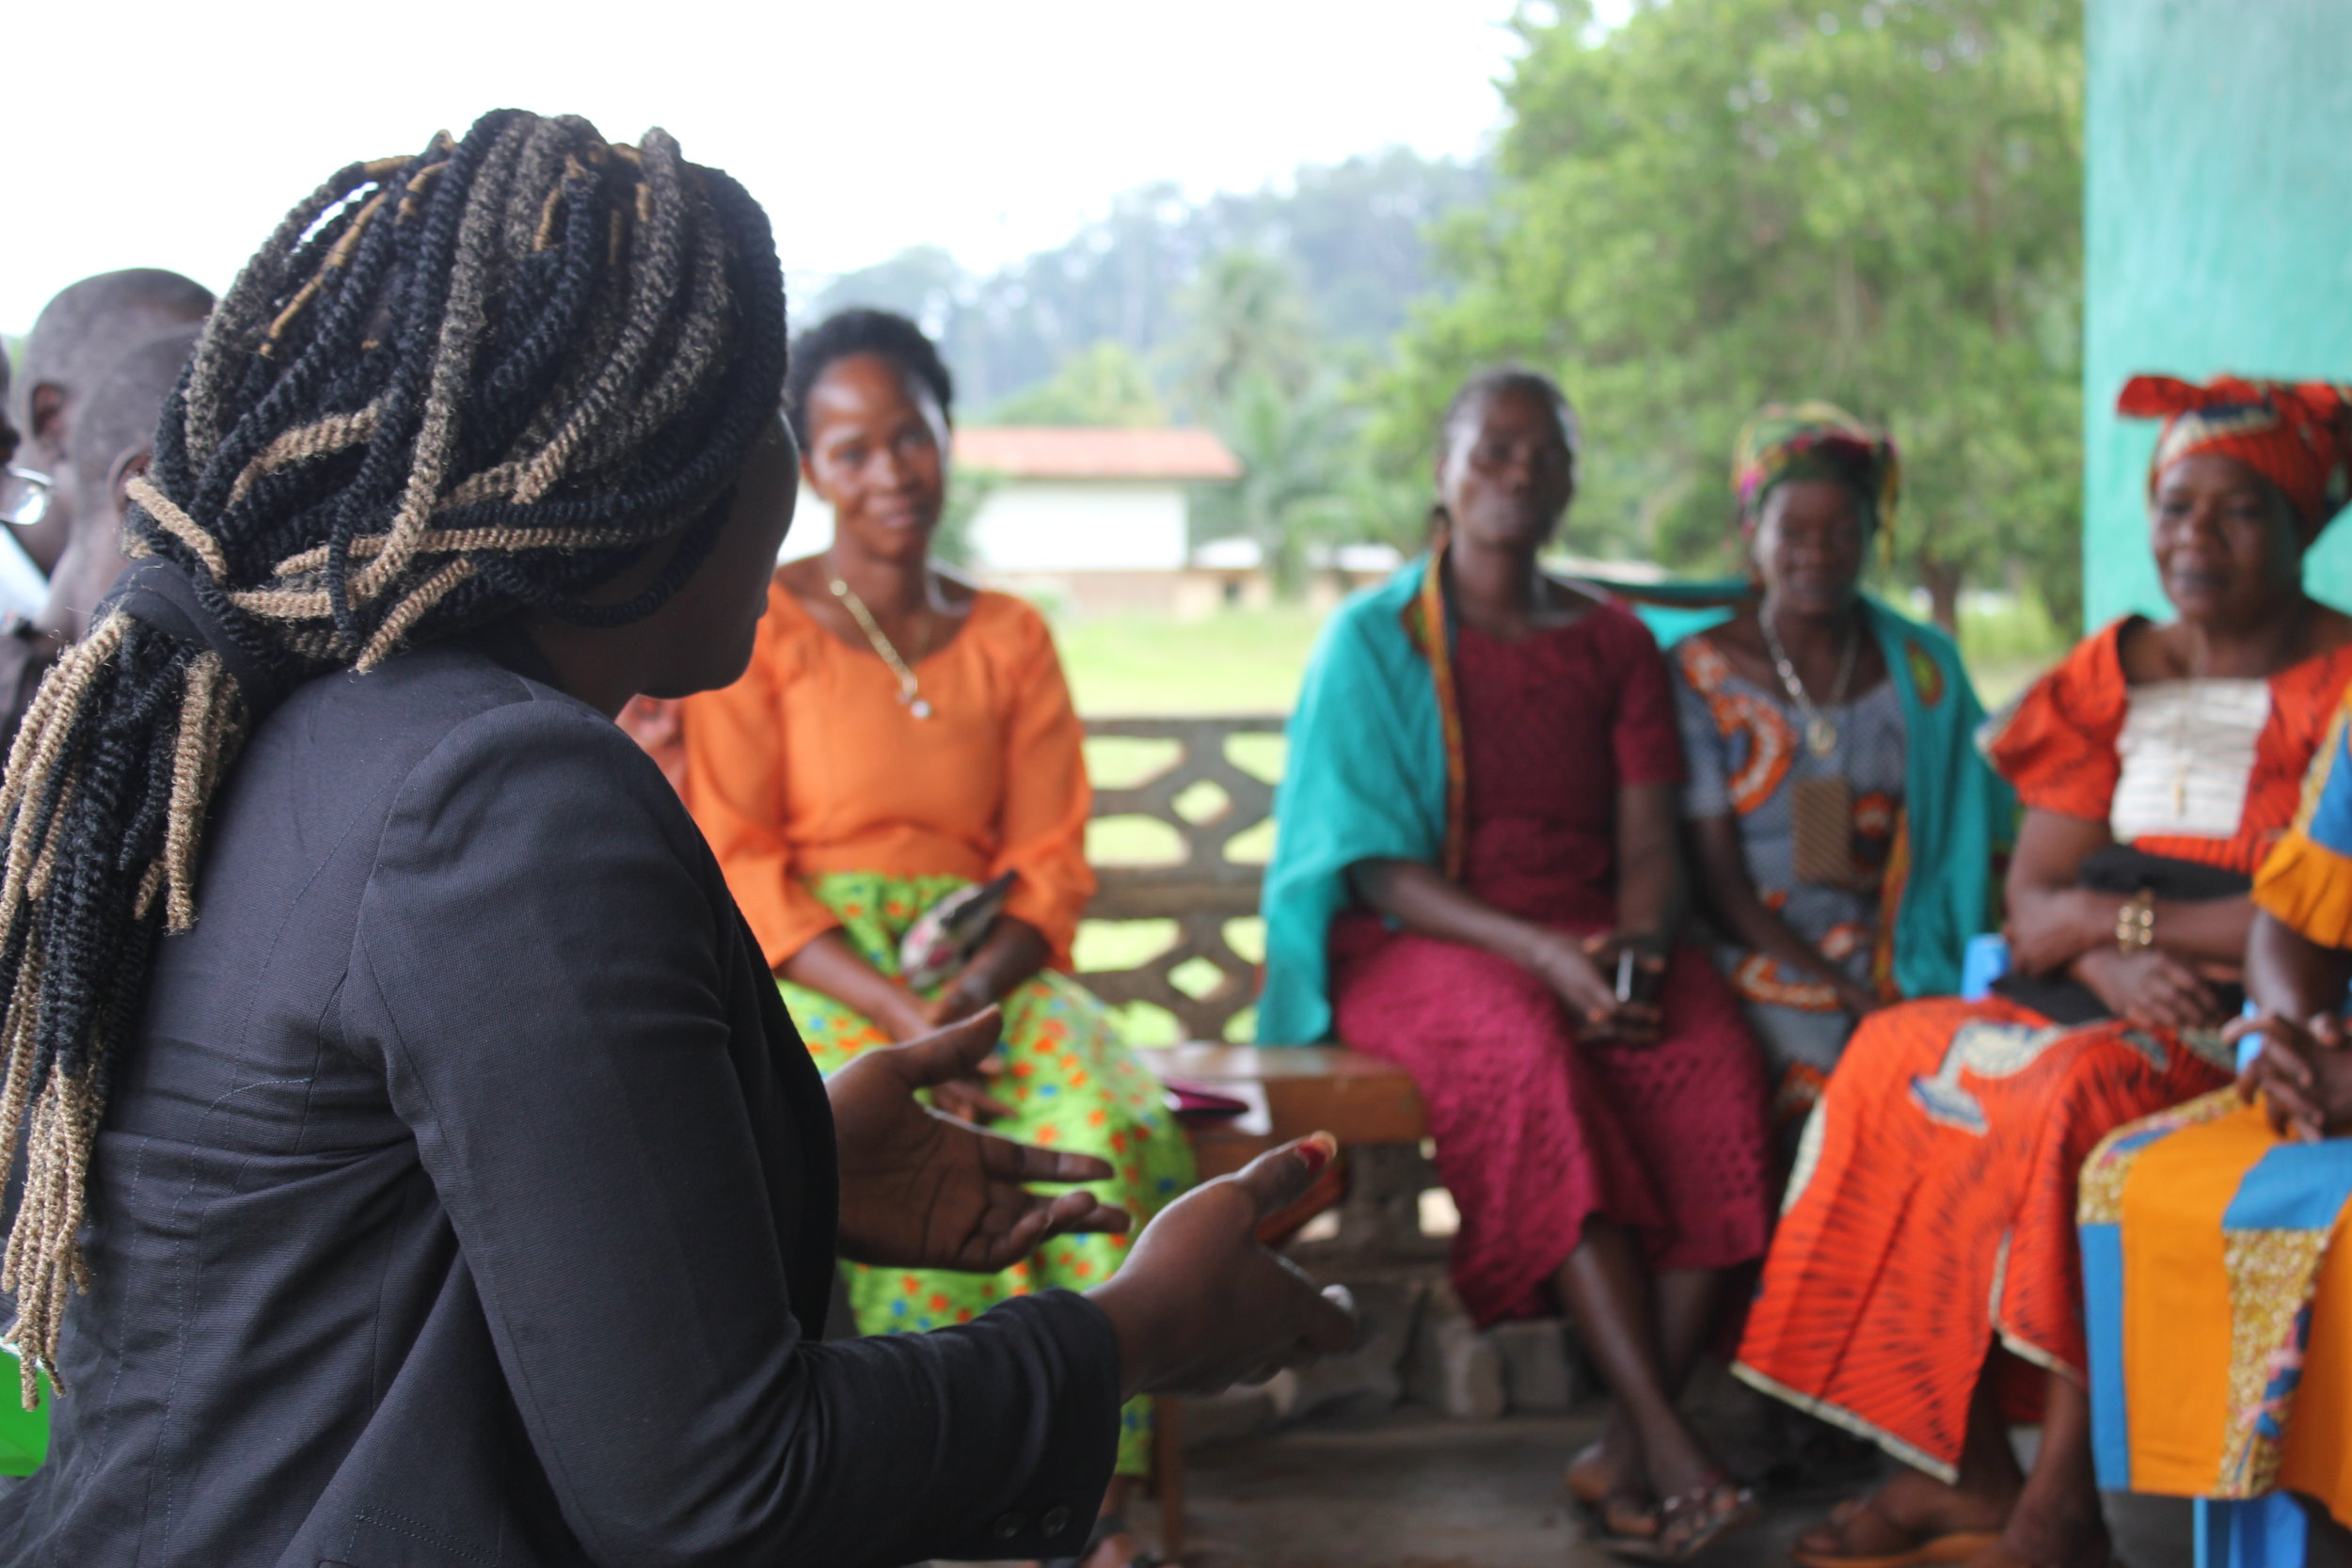 R is for Reconciliation - Ever since the 1994 genocide, peacebuilders in Rwanda have sought to bridge ethnic divides and grapple with the legacy of suffering.